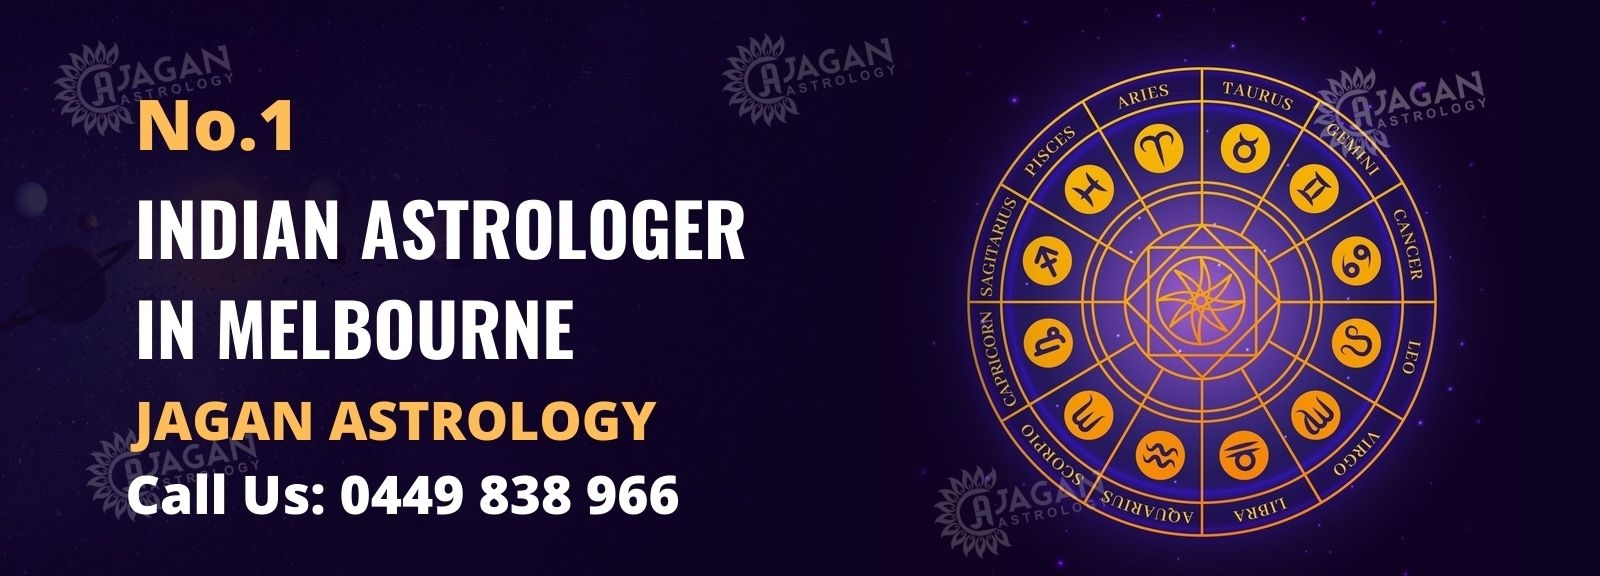 Astrologer Jagan ji (@astrologerjagan) Cover Image